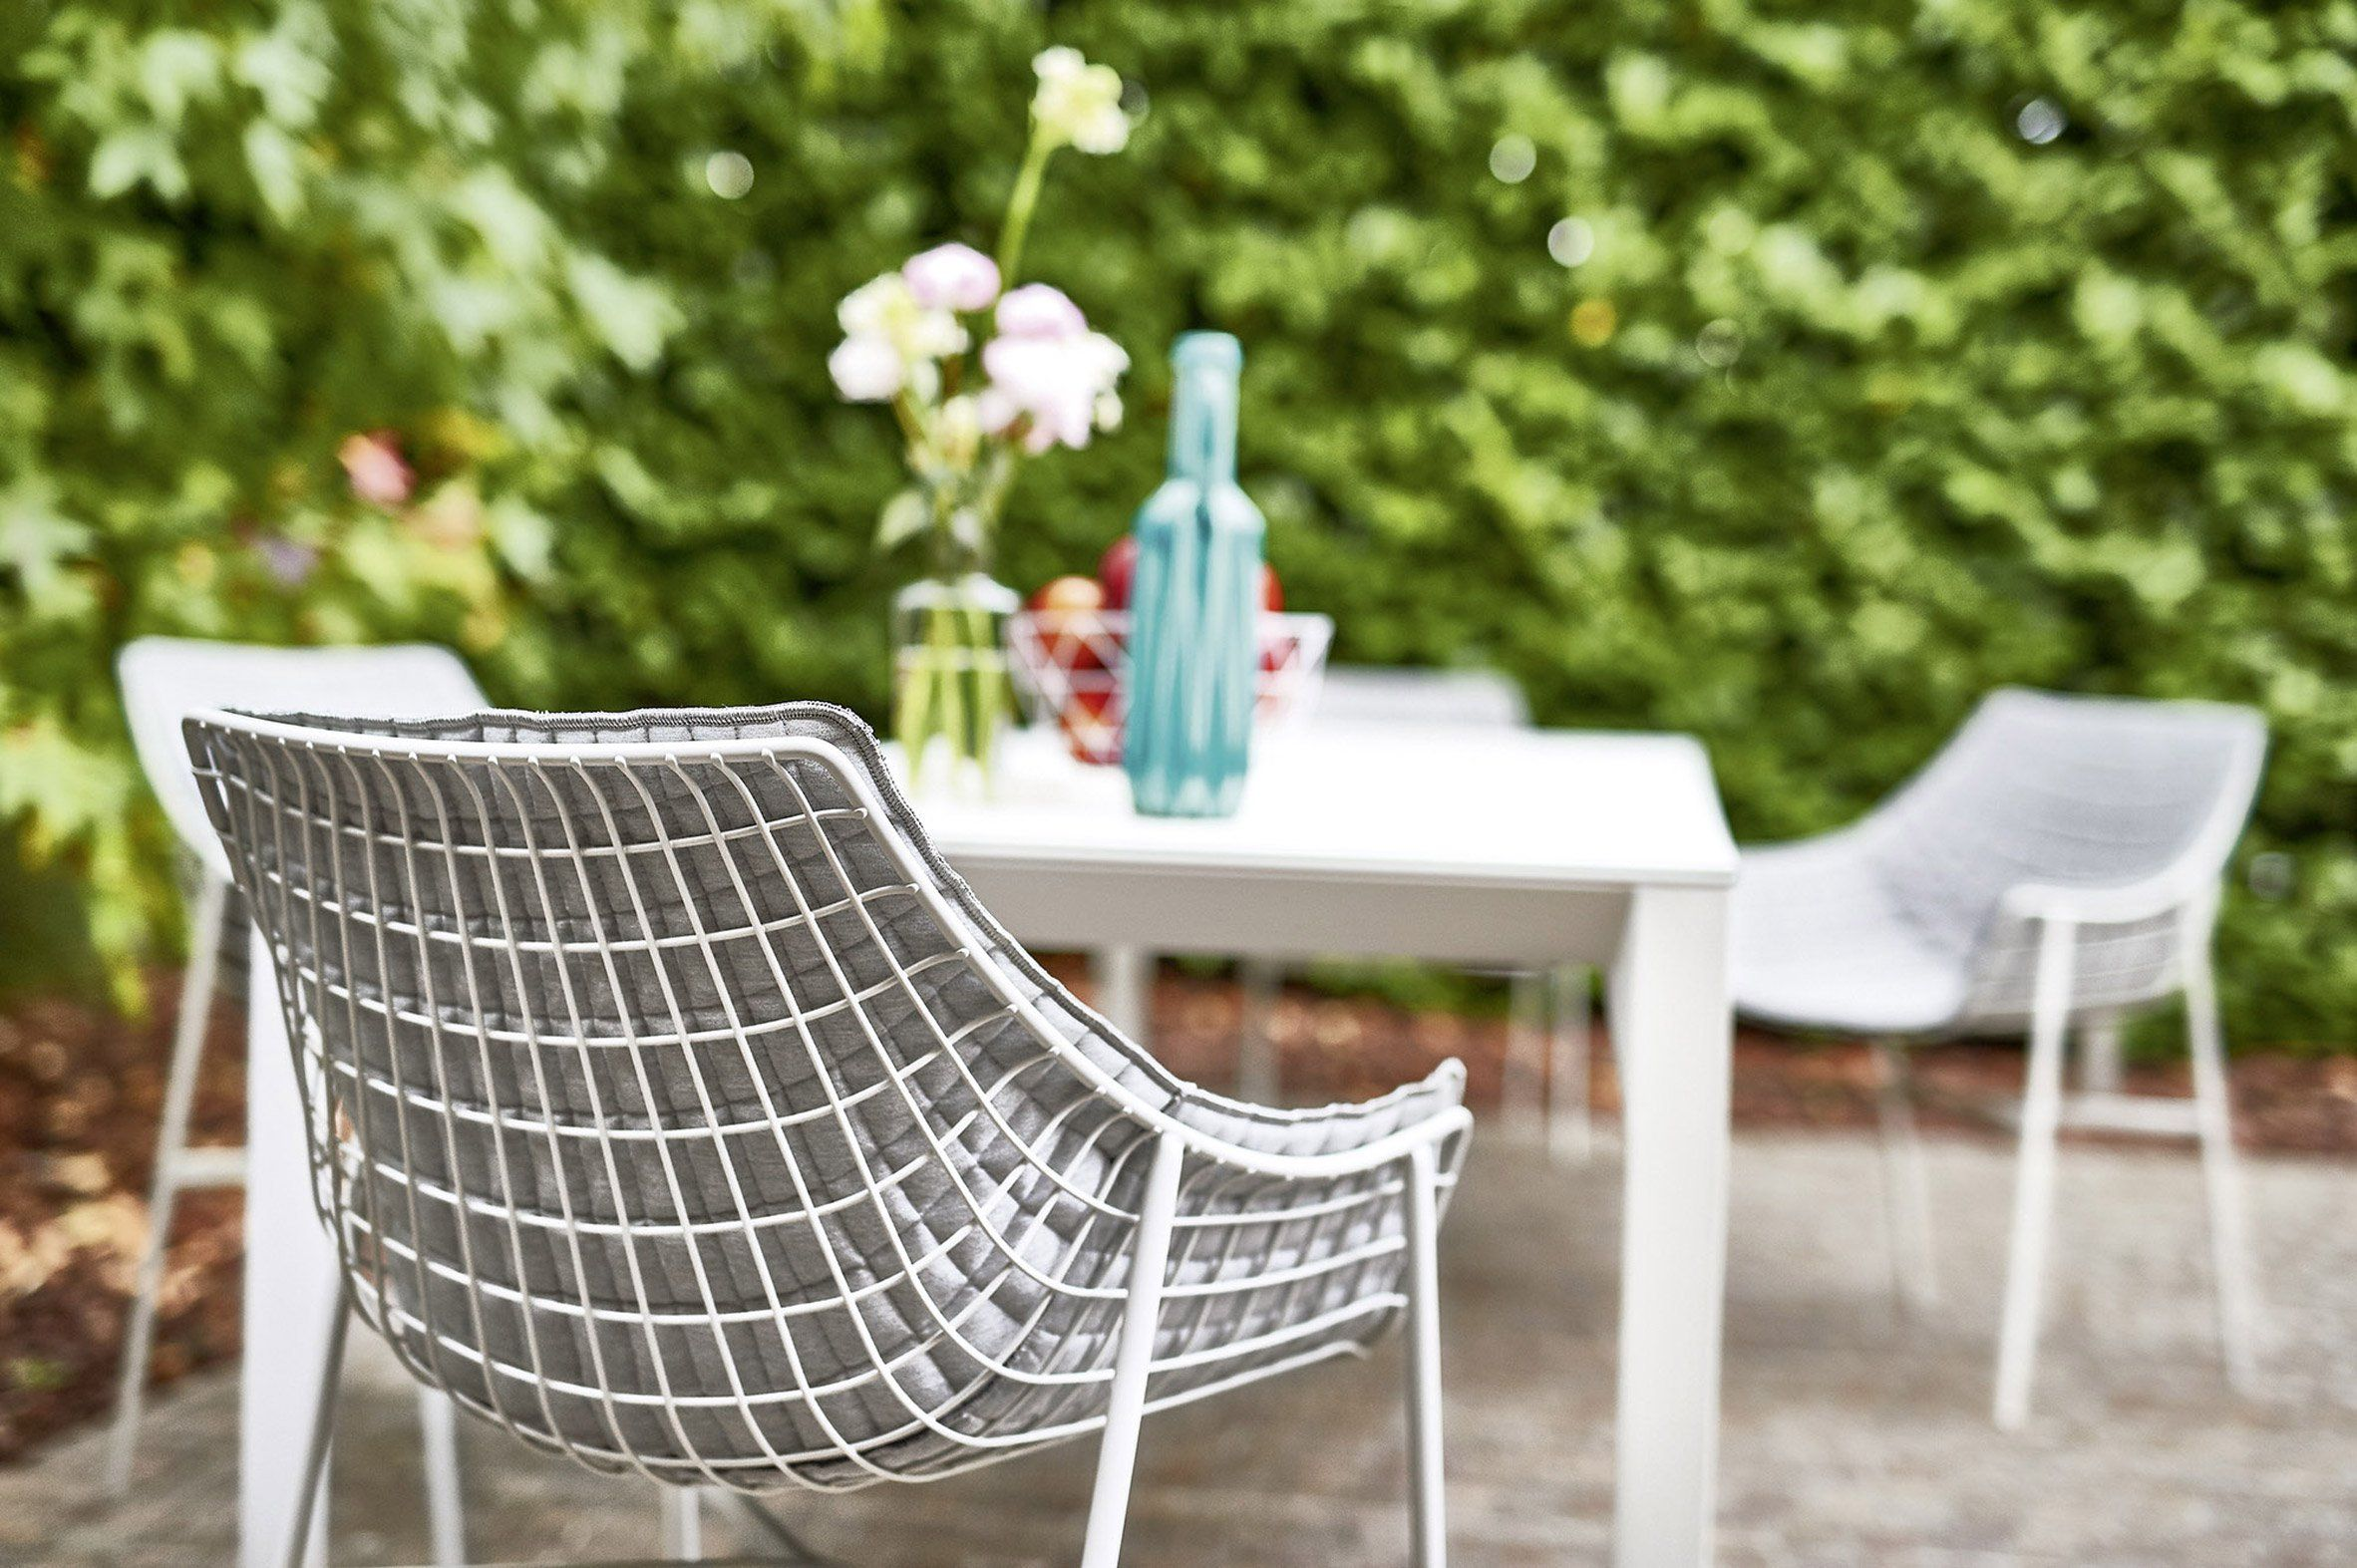 italian furniture brand. Italian Furniture Brand Varaschin Has Added A Rocking Chair With Net-structure Frame And R